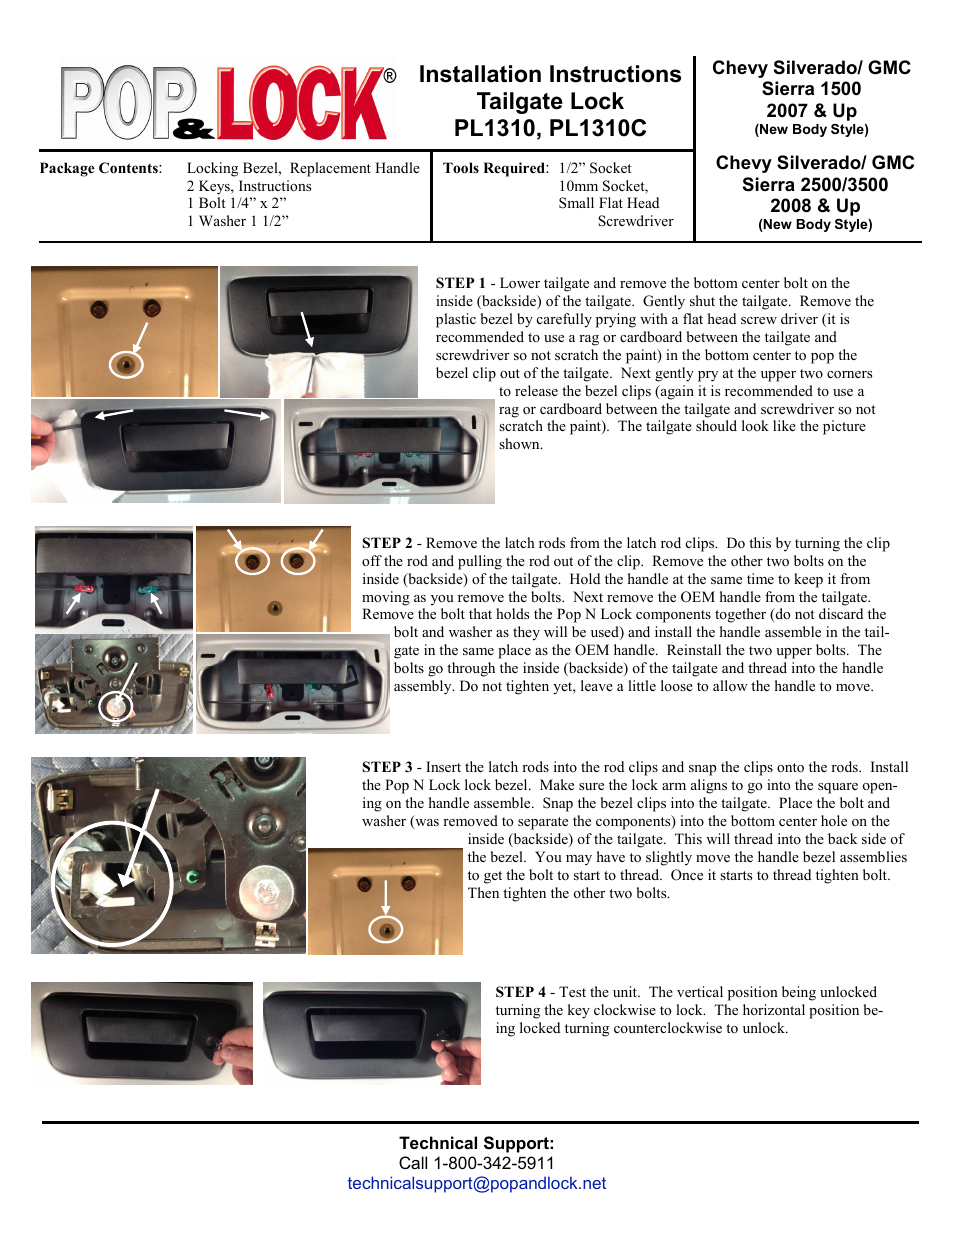 Pop & Lock PL1310C User Manual   2 pages   Also for: PL1310